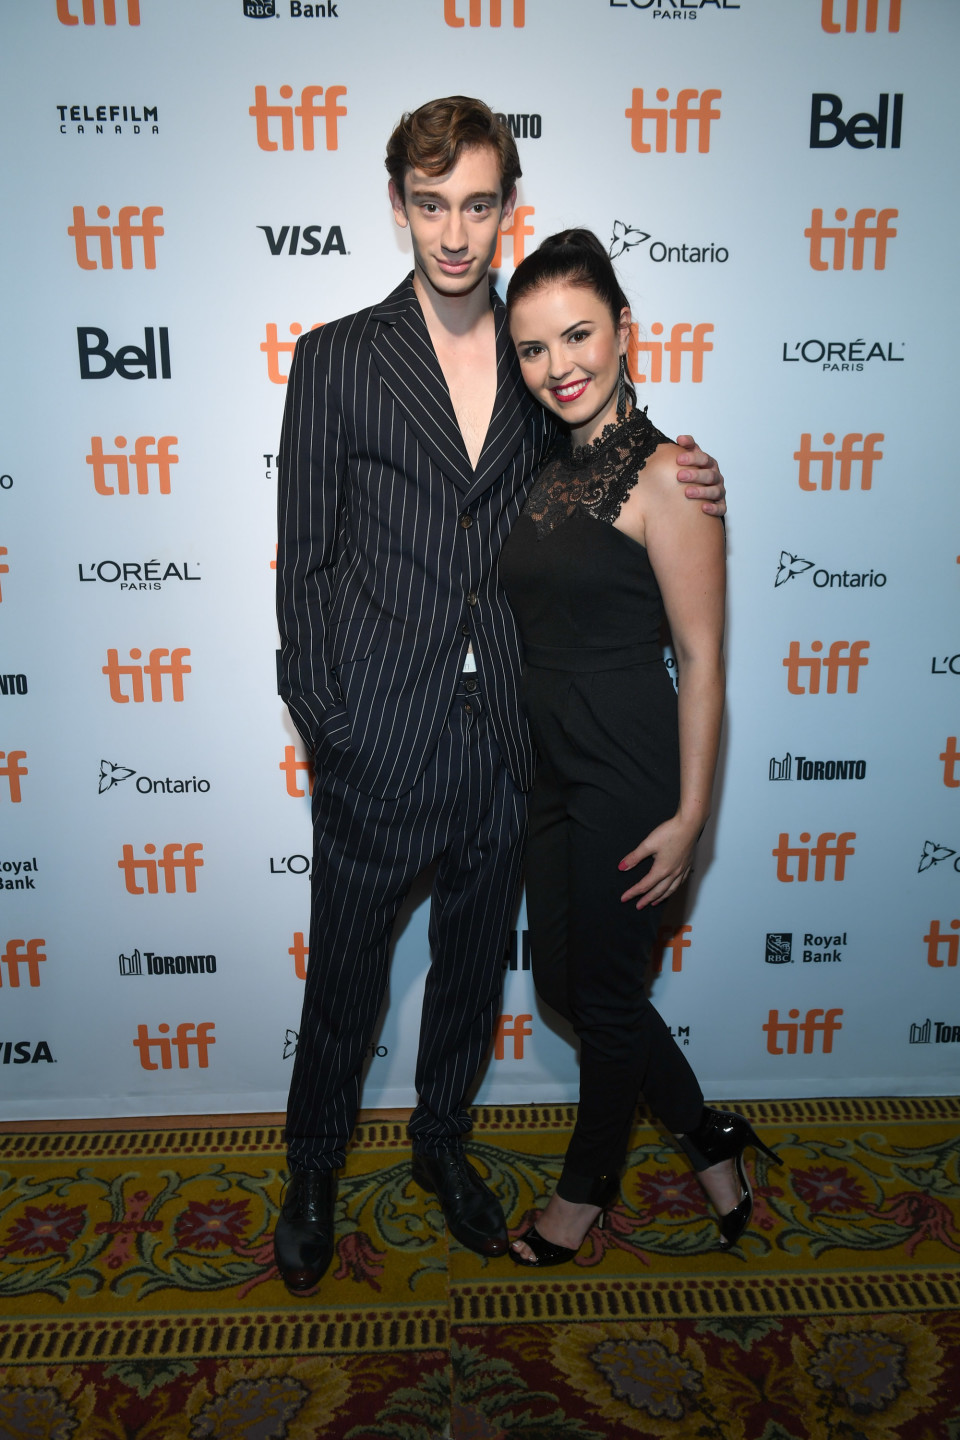 Theodore Pellerin and Mary Galloway at the 2017 Toronto International Film Festival.